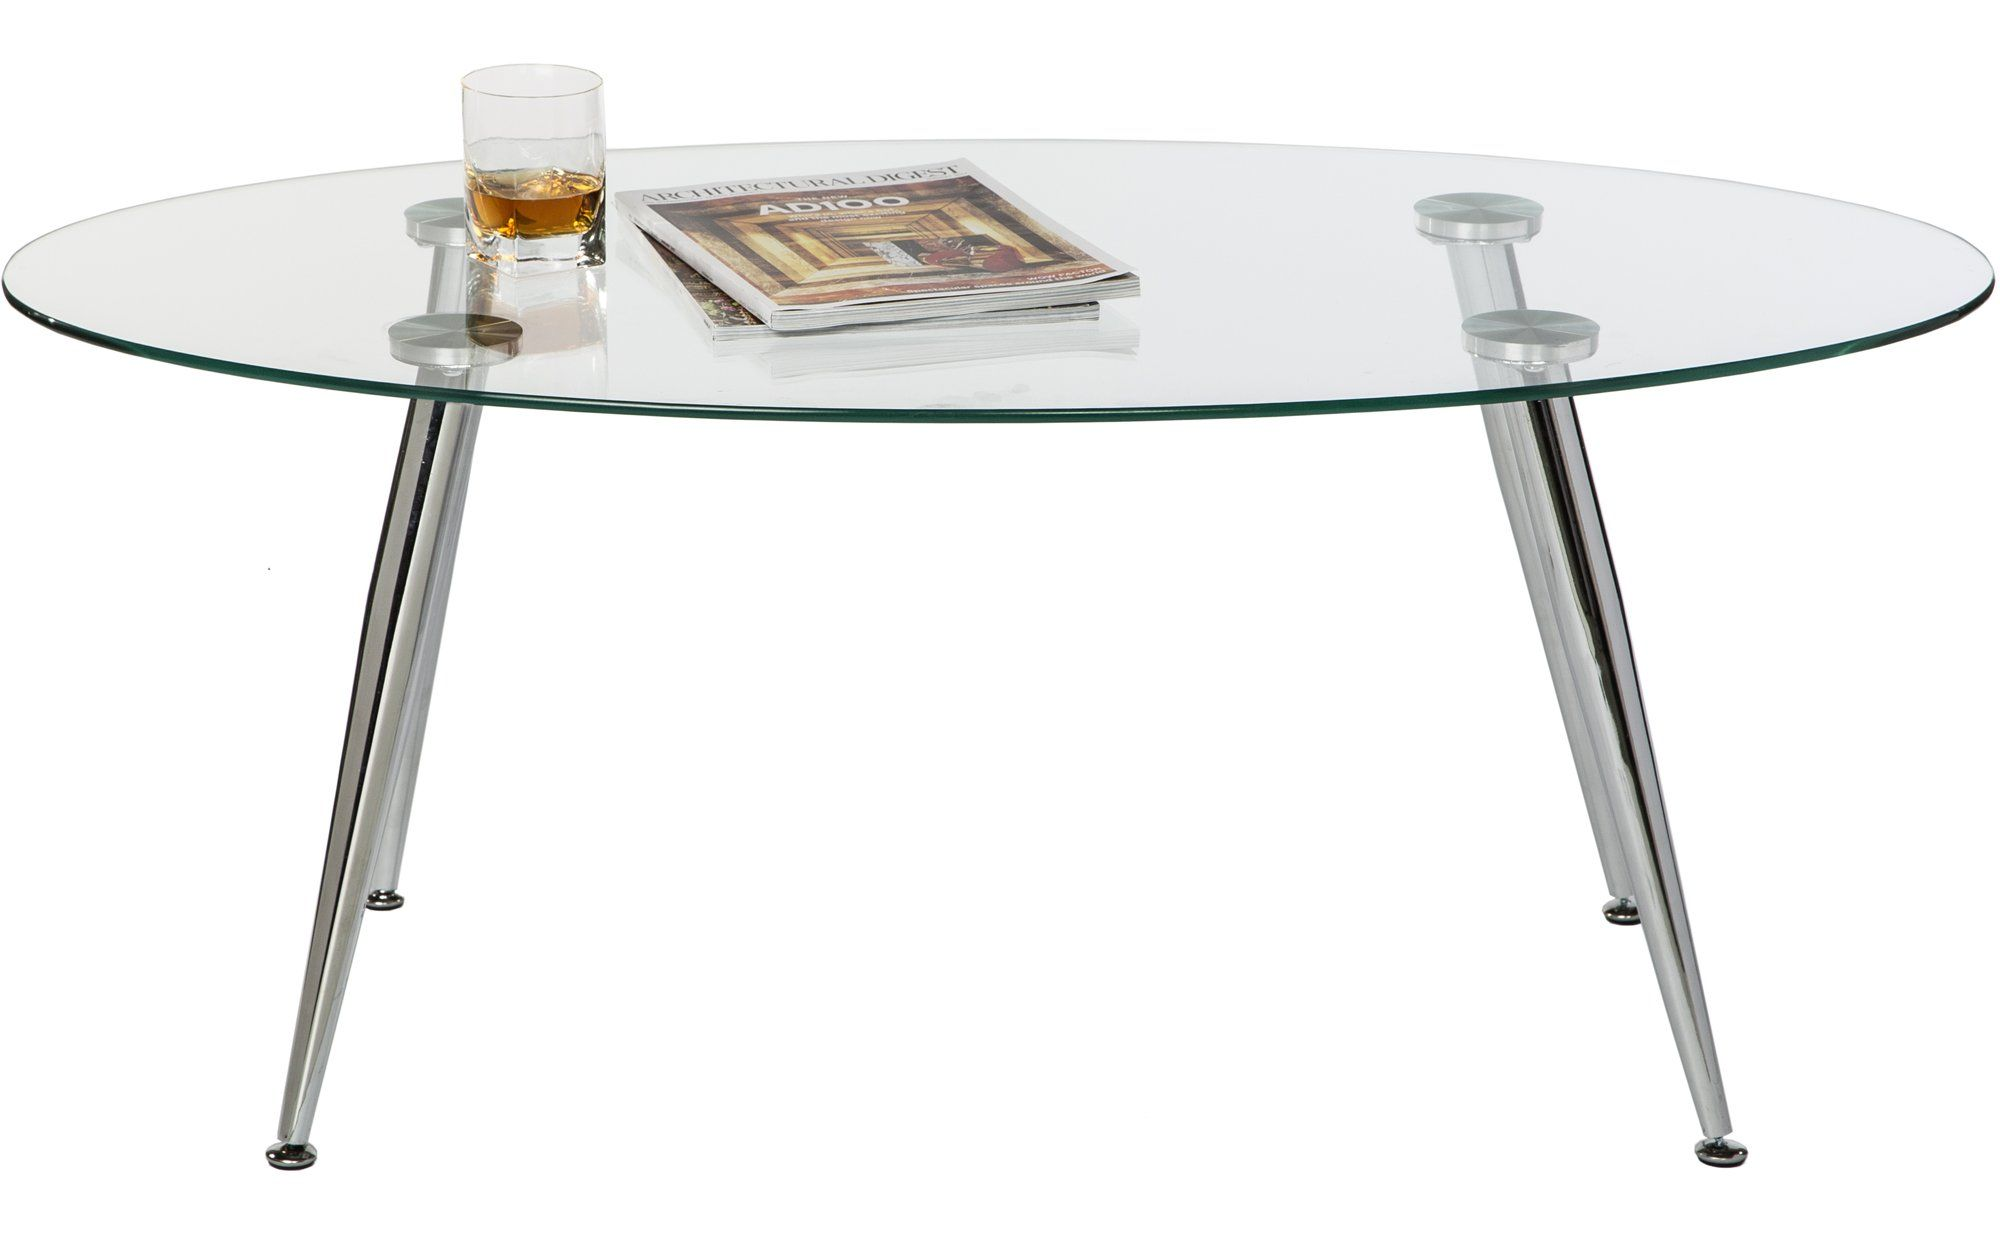 Mango Steam Pacifica Coffee Table Oval Clear Tempered Glass Top And Chrome Tube Base You Could Discover Even More De Cool Coffee Tables Coffee Table Table [ 1253 x 2000 Pixel ]